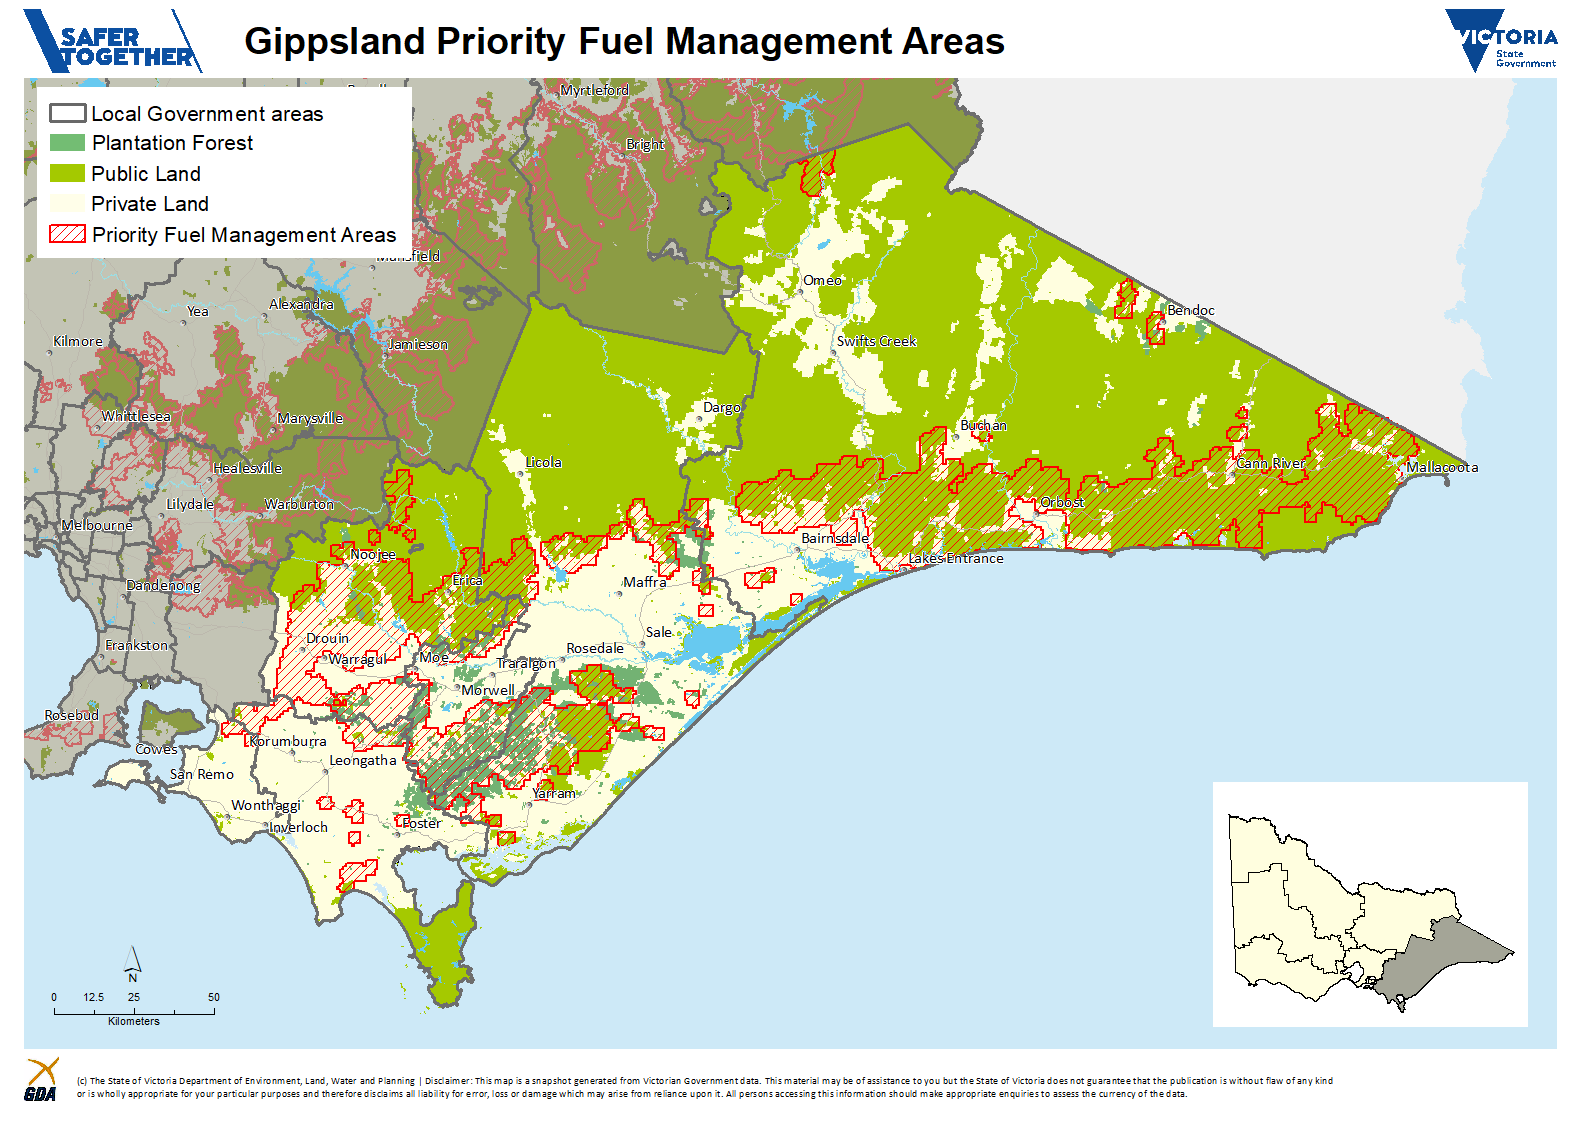 A map of the proposed Priority Fuel Management Areas in the Gippsland Region